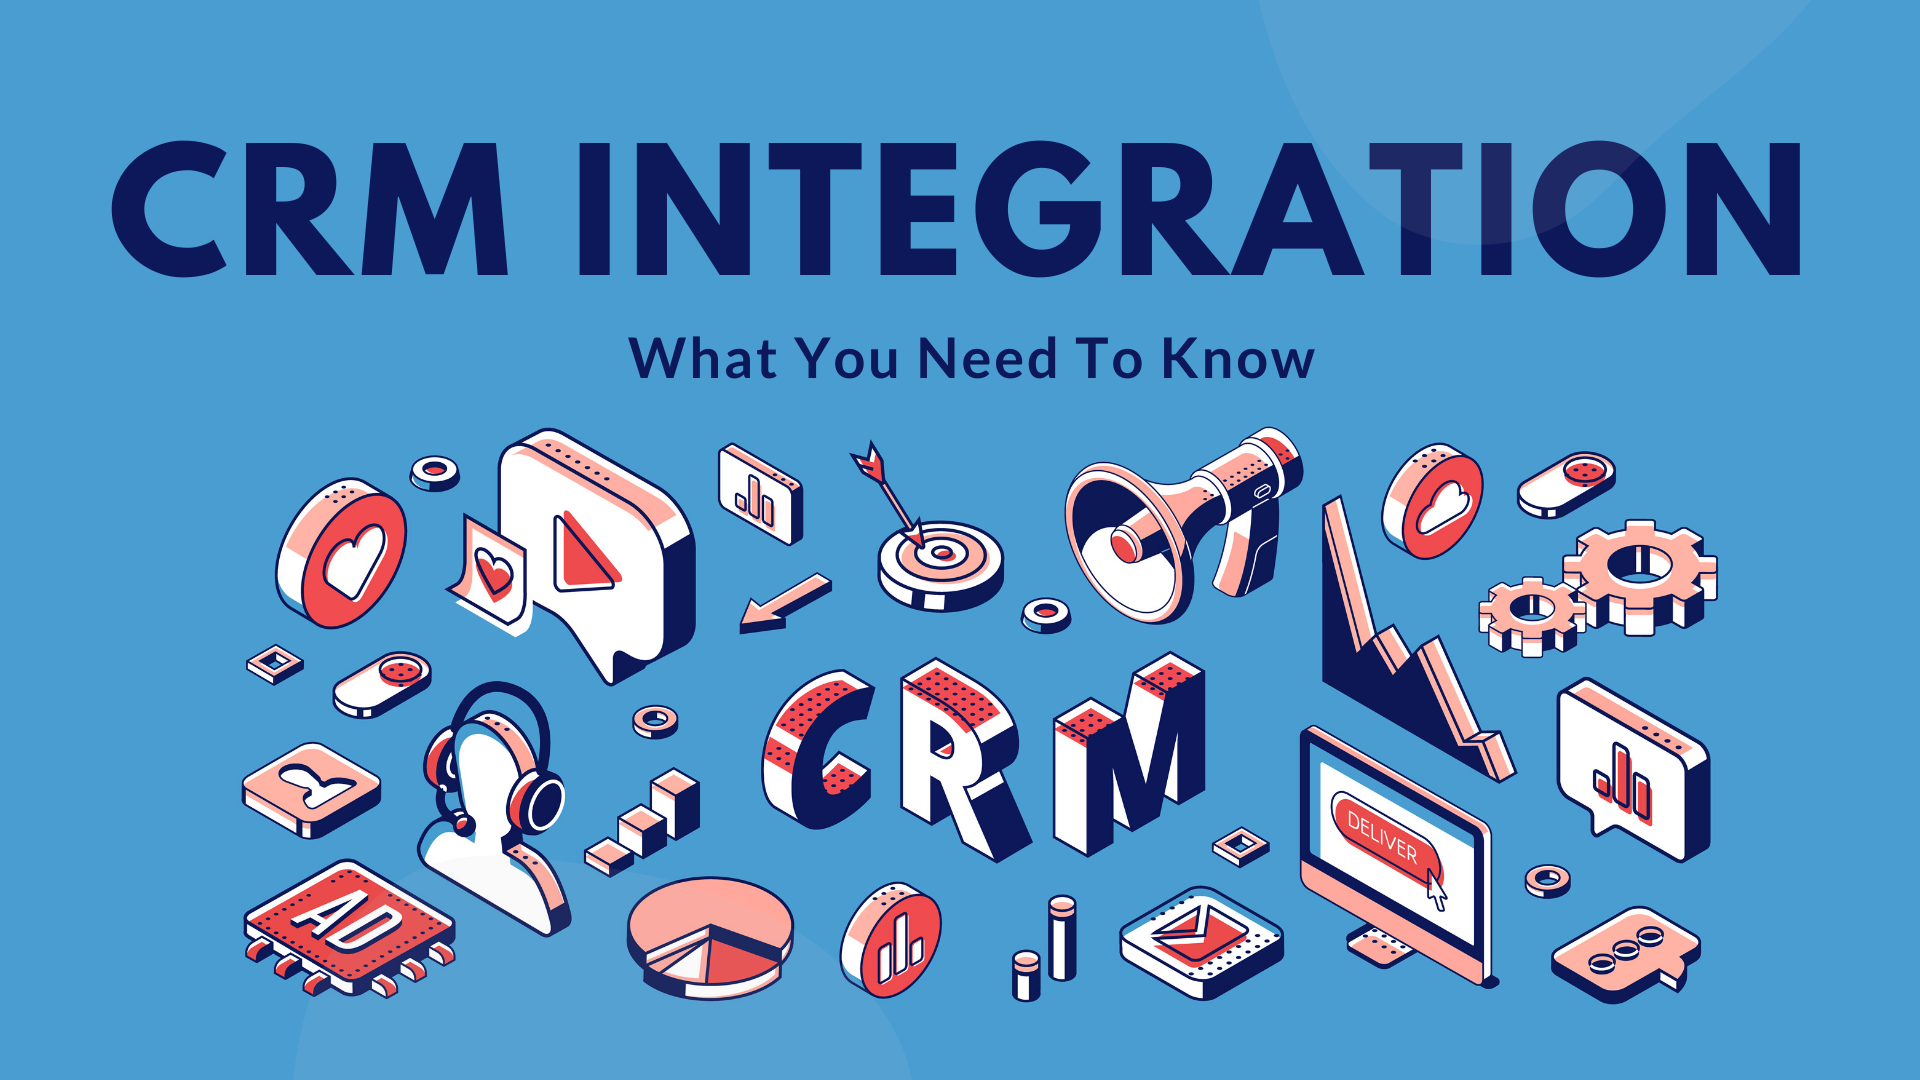 CRM Integration: What You Need To Know